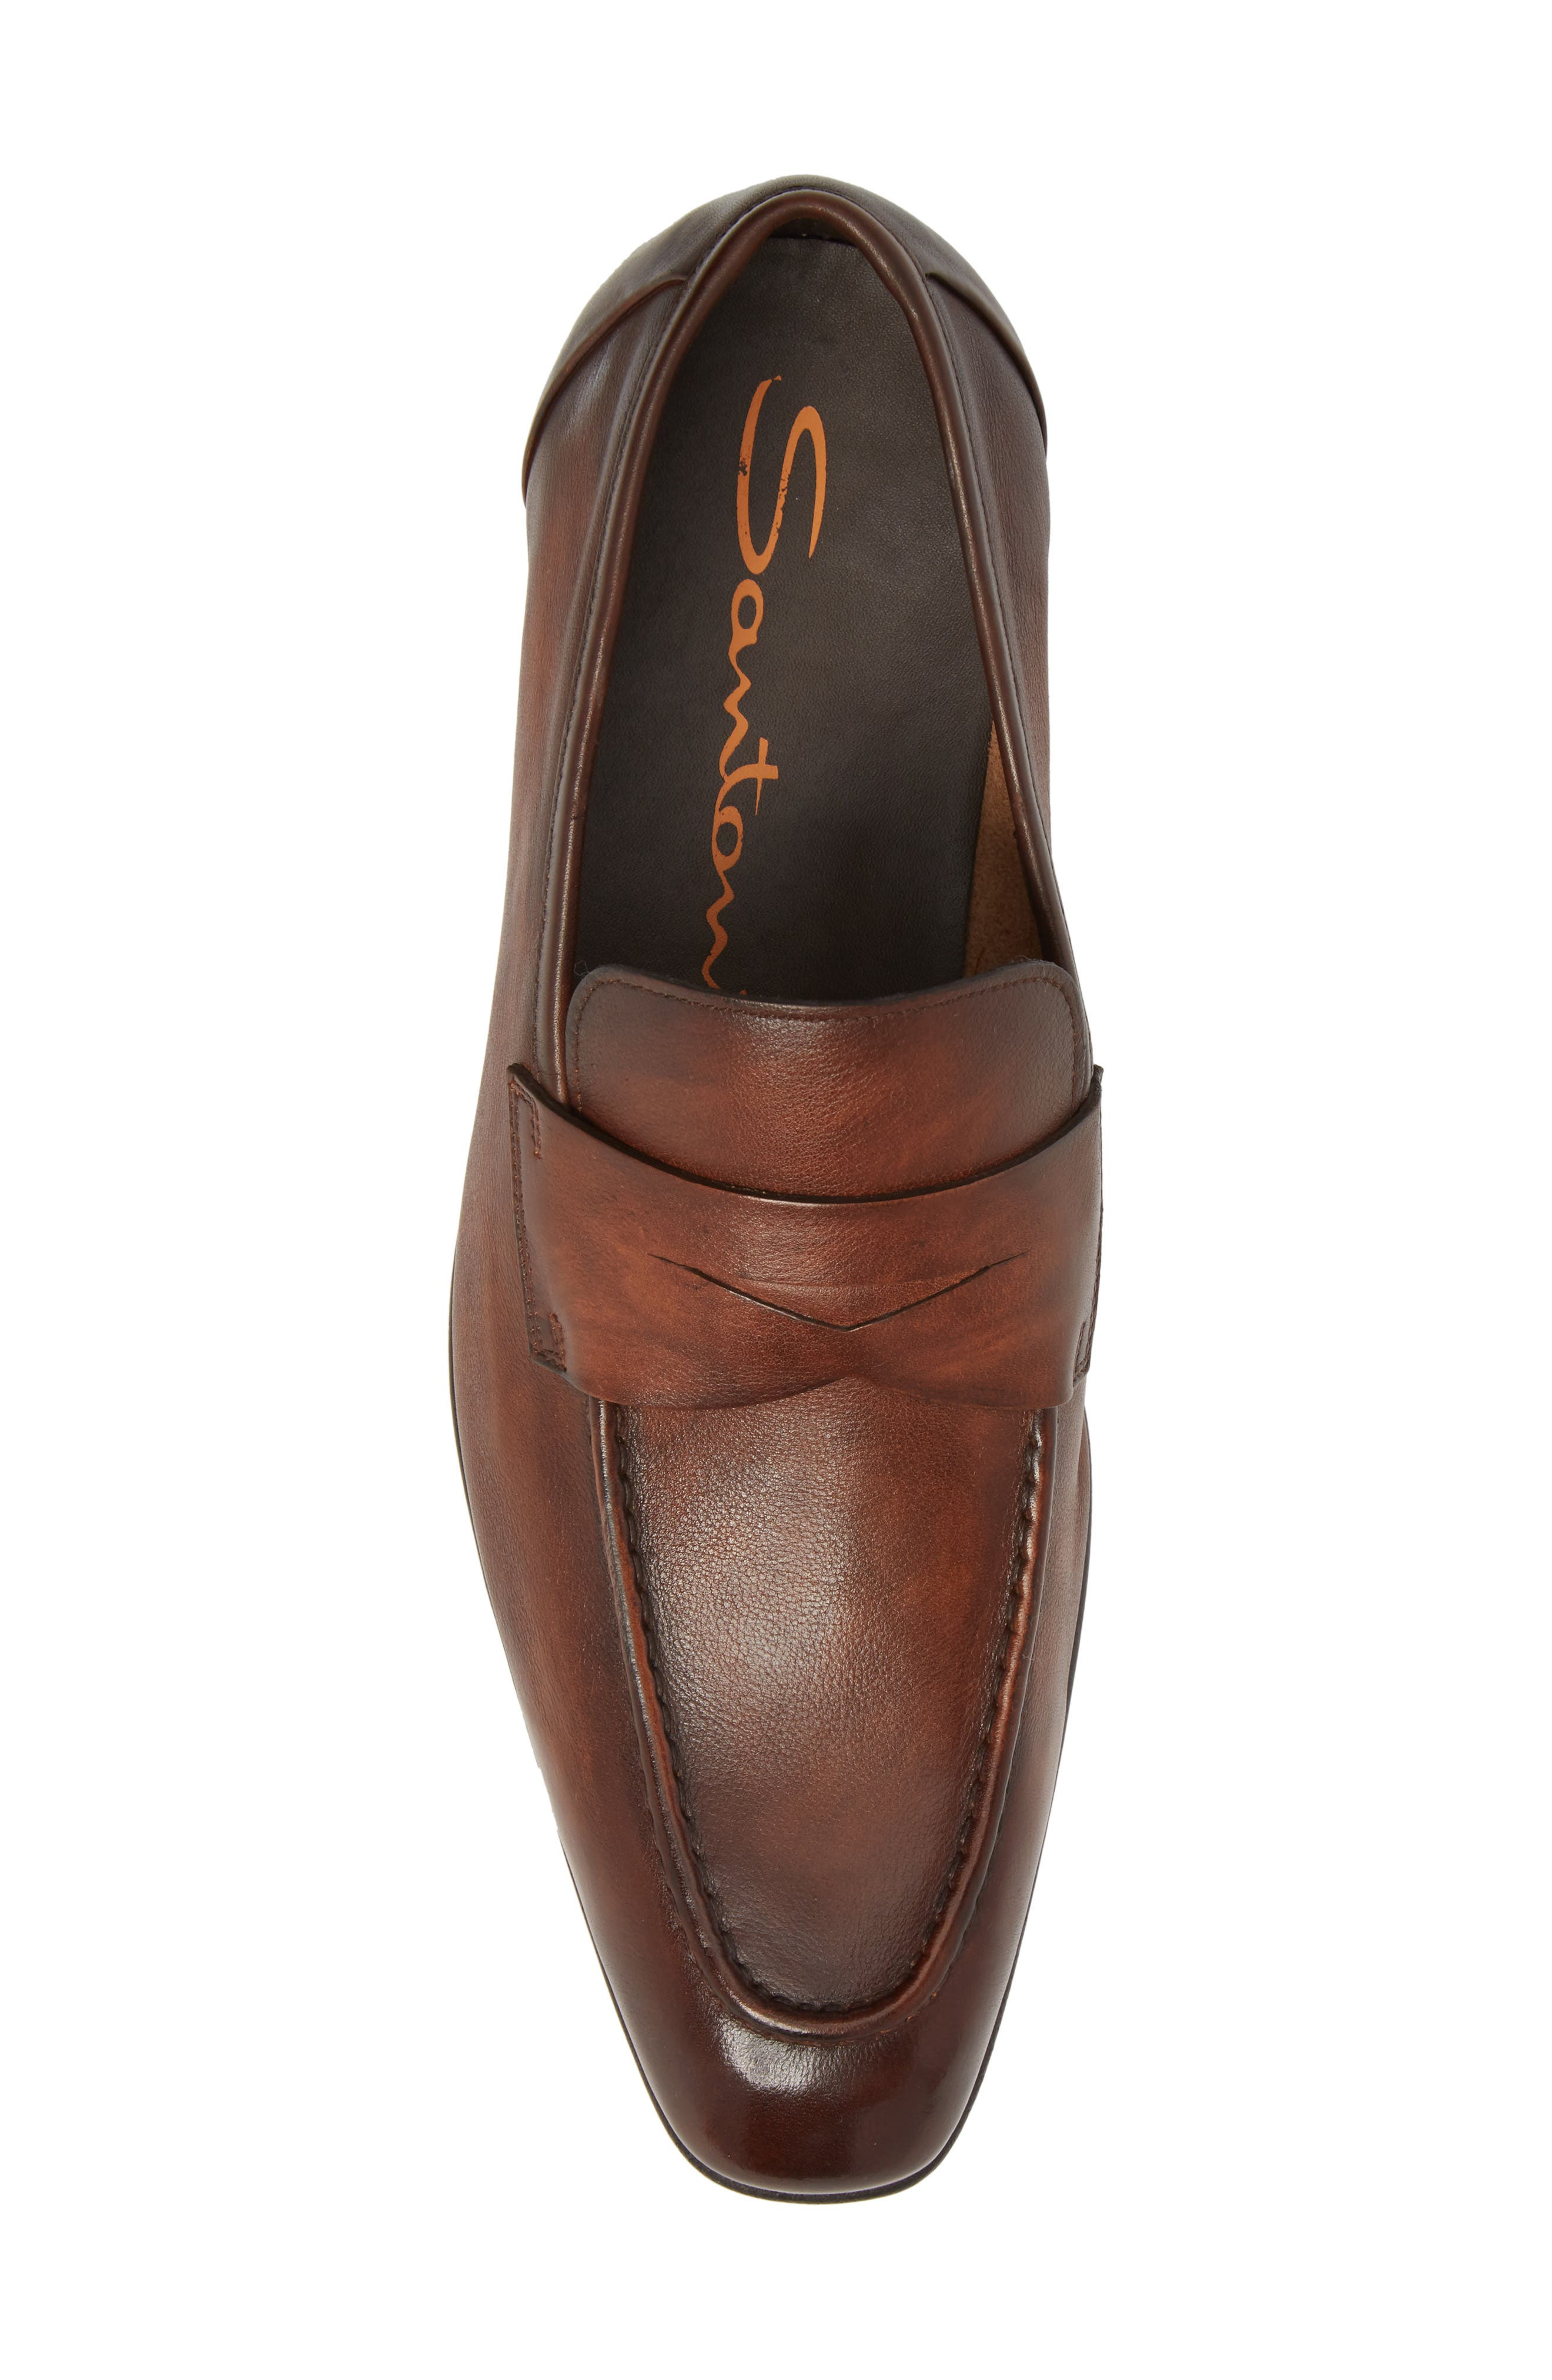 Gannon Penny Loafer,                             Alternate thumbnail 5, color,                             TAN